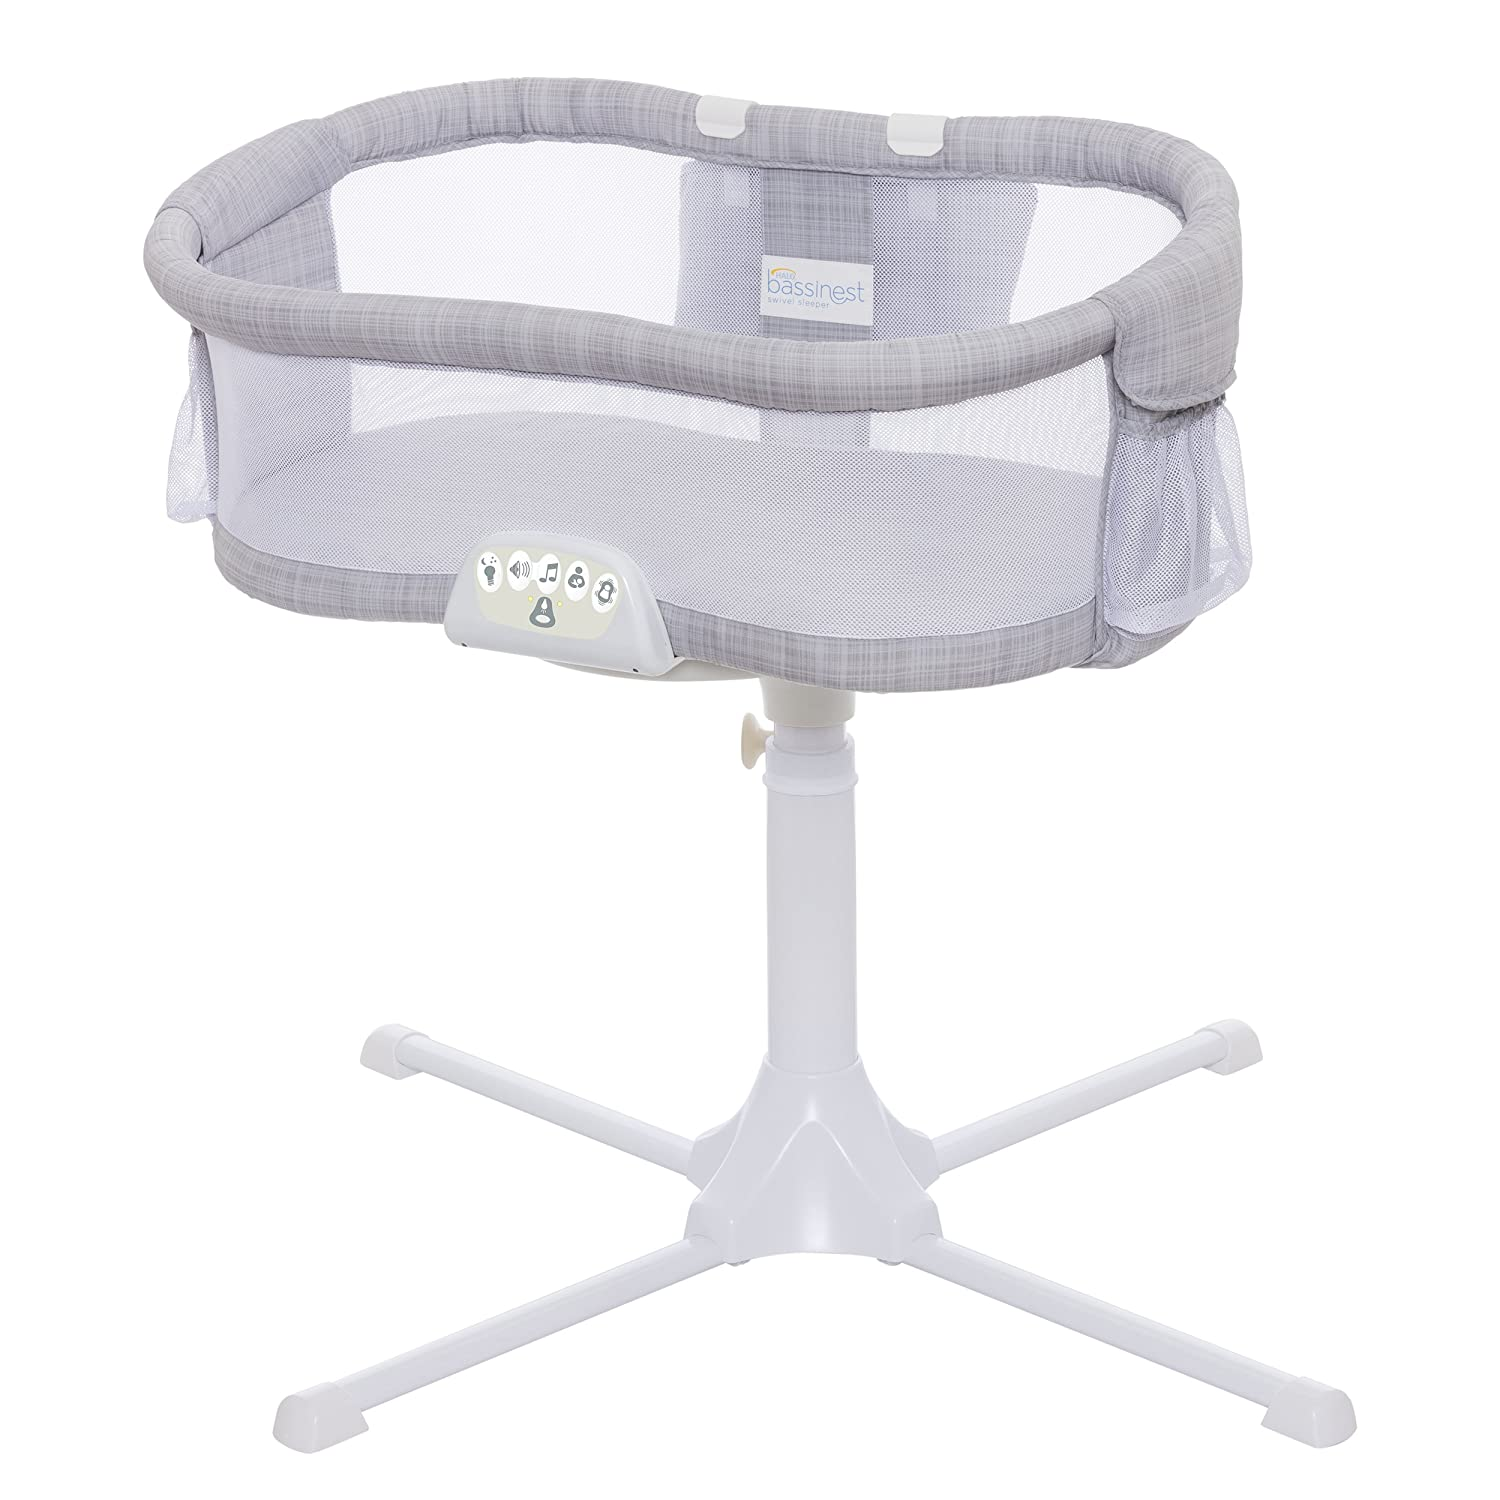 Halo Bassinest Luxe Plus Bassinet System in Grey Melange with Organic Cotton Sheet and Mattress